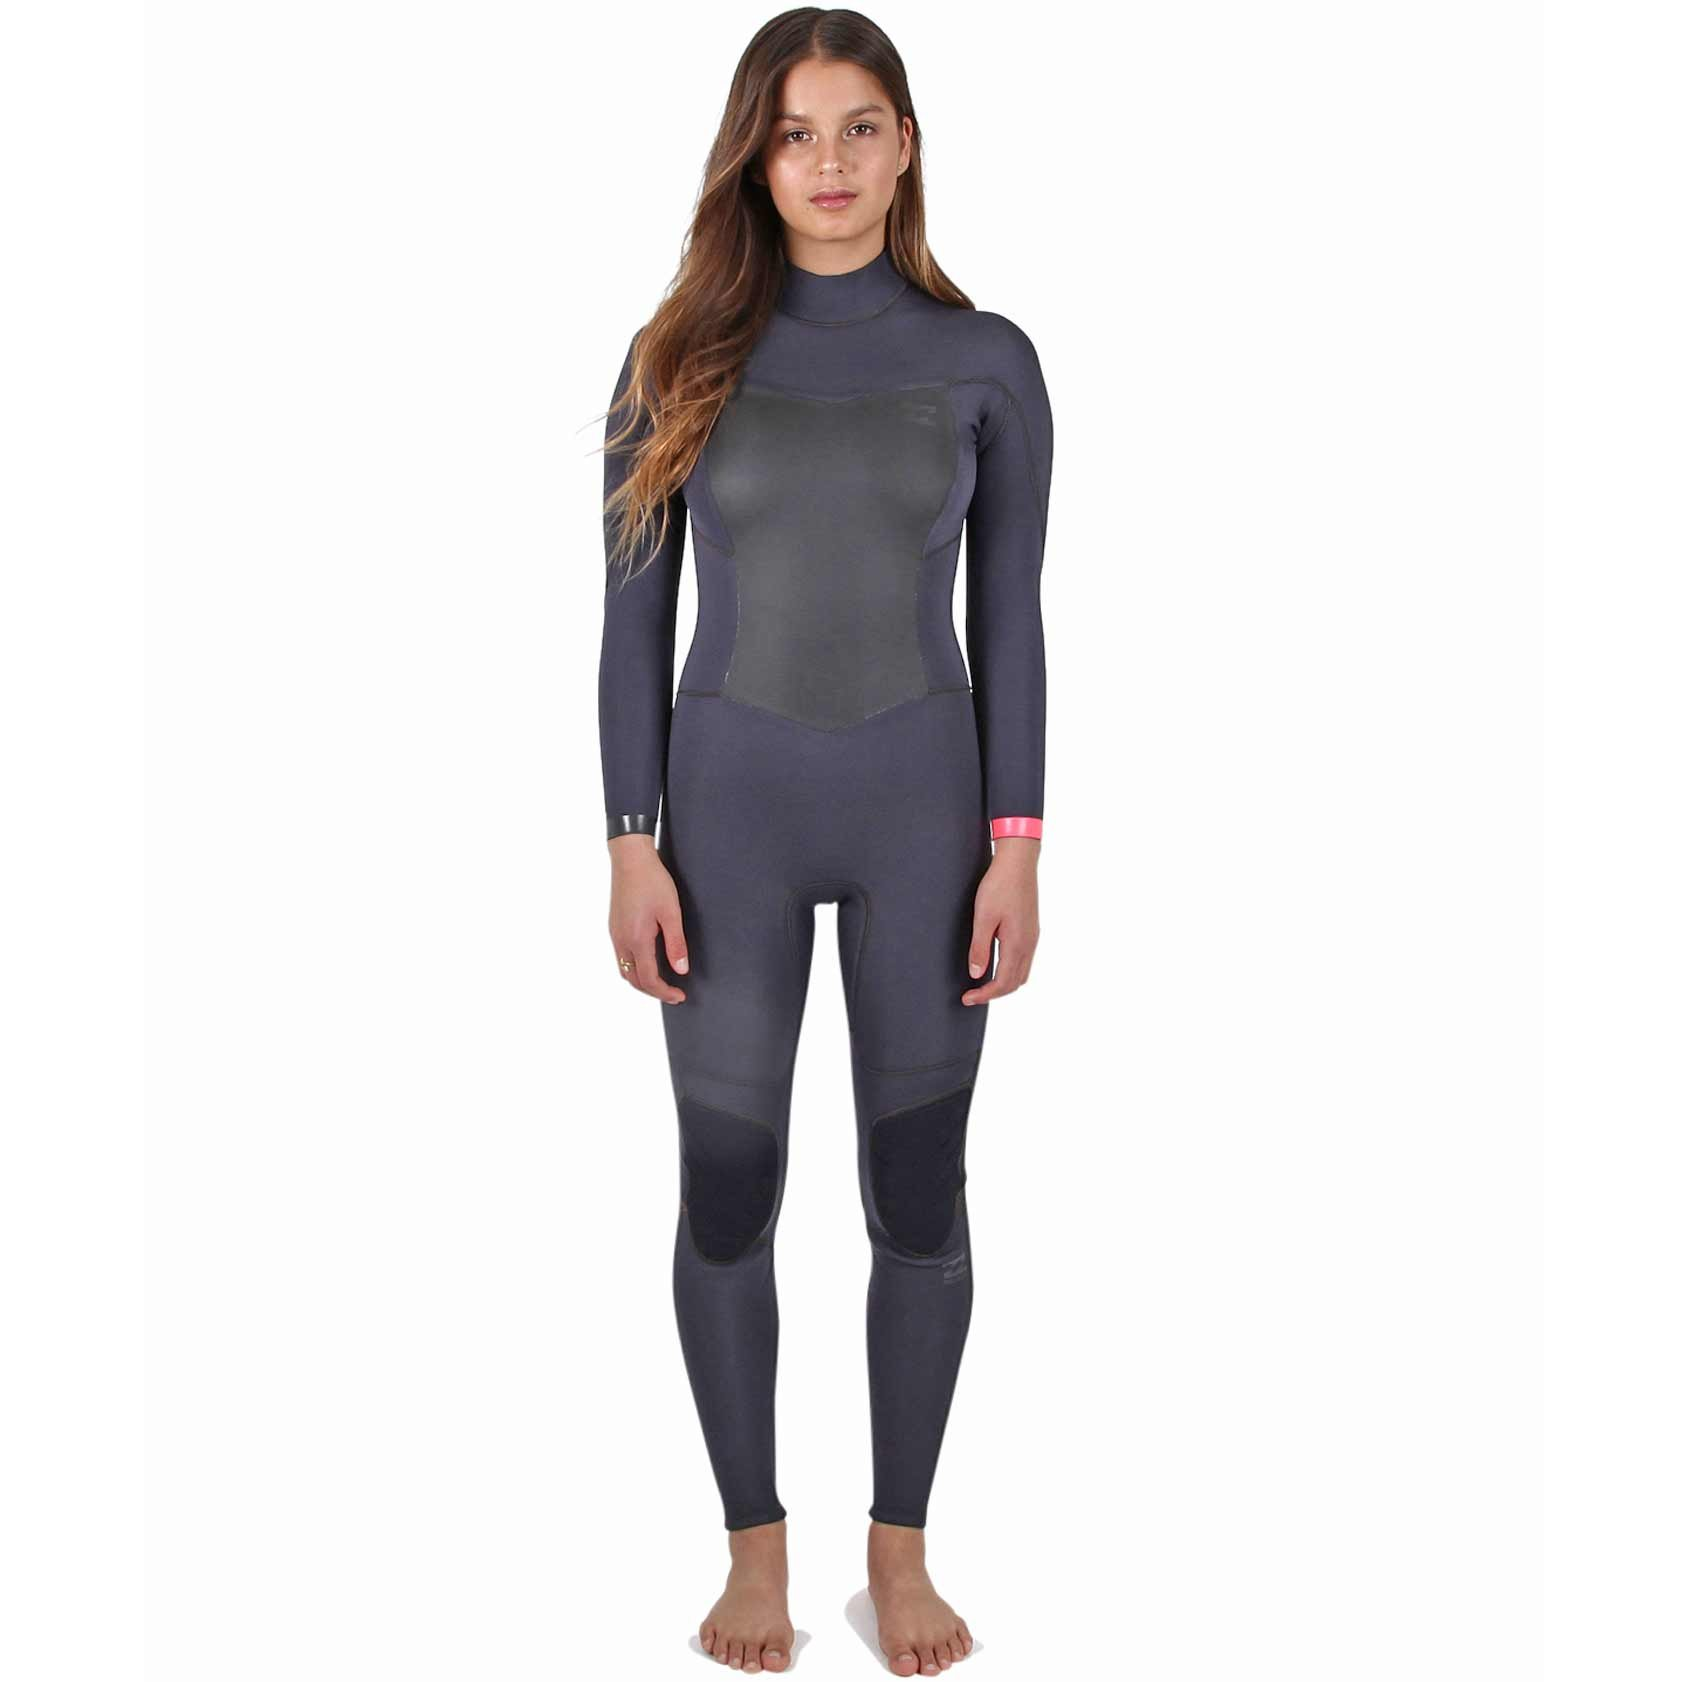 Billabong Womens 403 Synergy Bz Wetsuit, Black Sands, 6